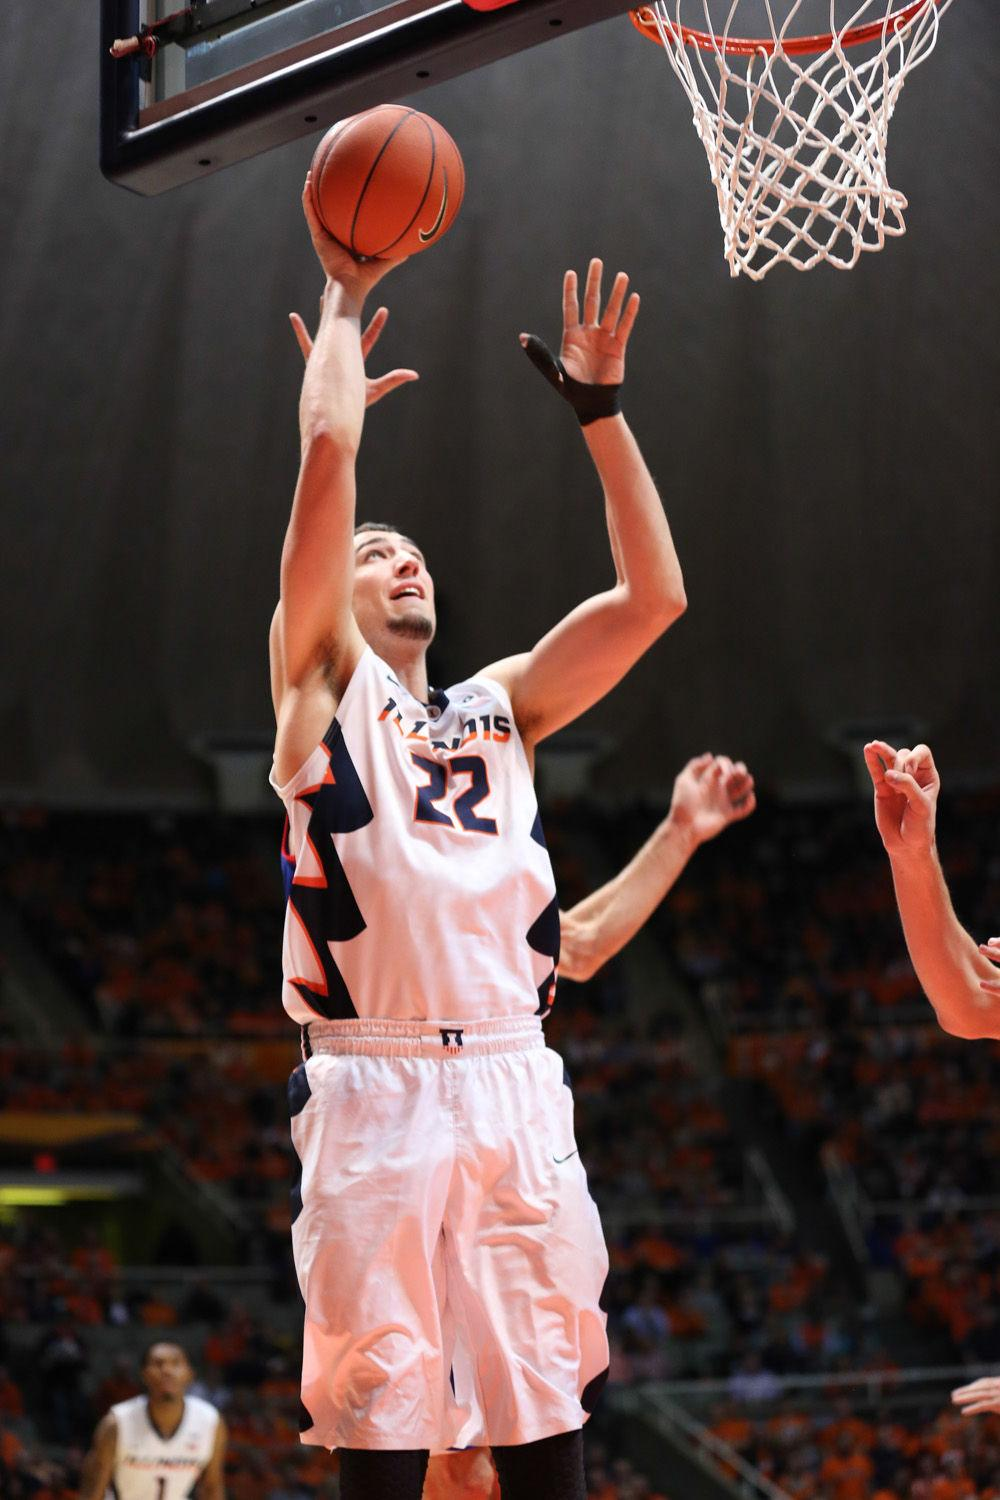 Illinois' Maverick Morgan attempts a close-range shot during the game against American at State Farm Center on Dec. 6. Morgan scored eight points in 11 minutes, plus four rebounds